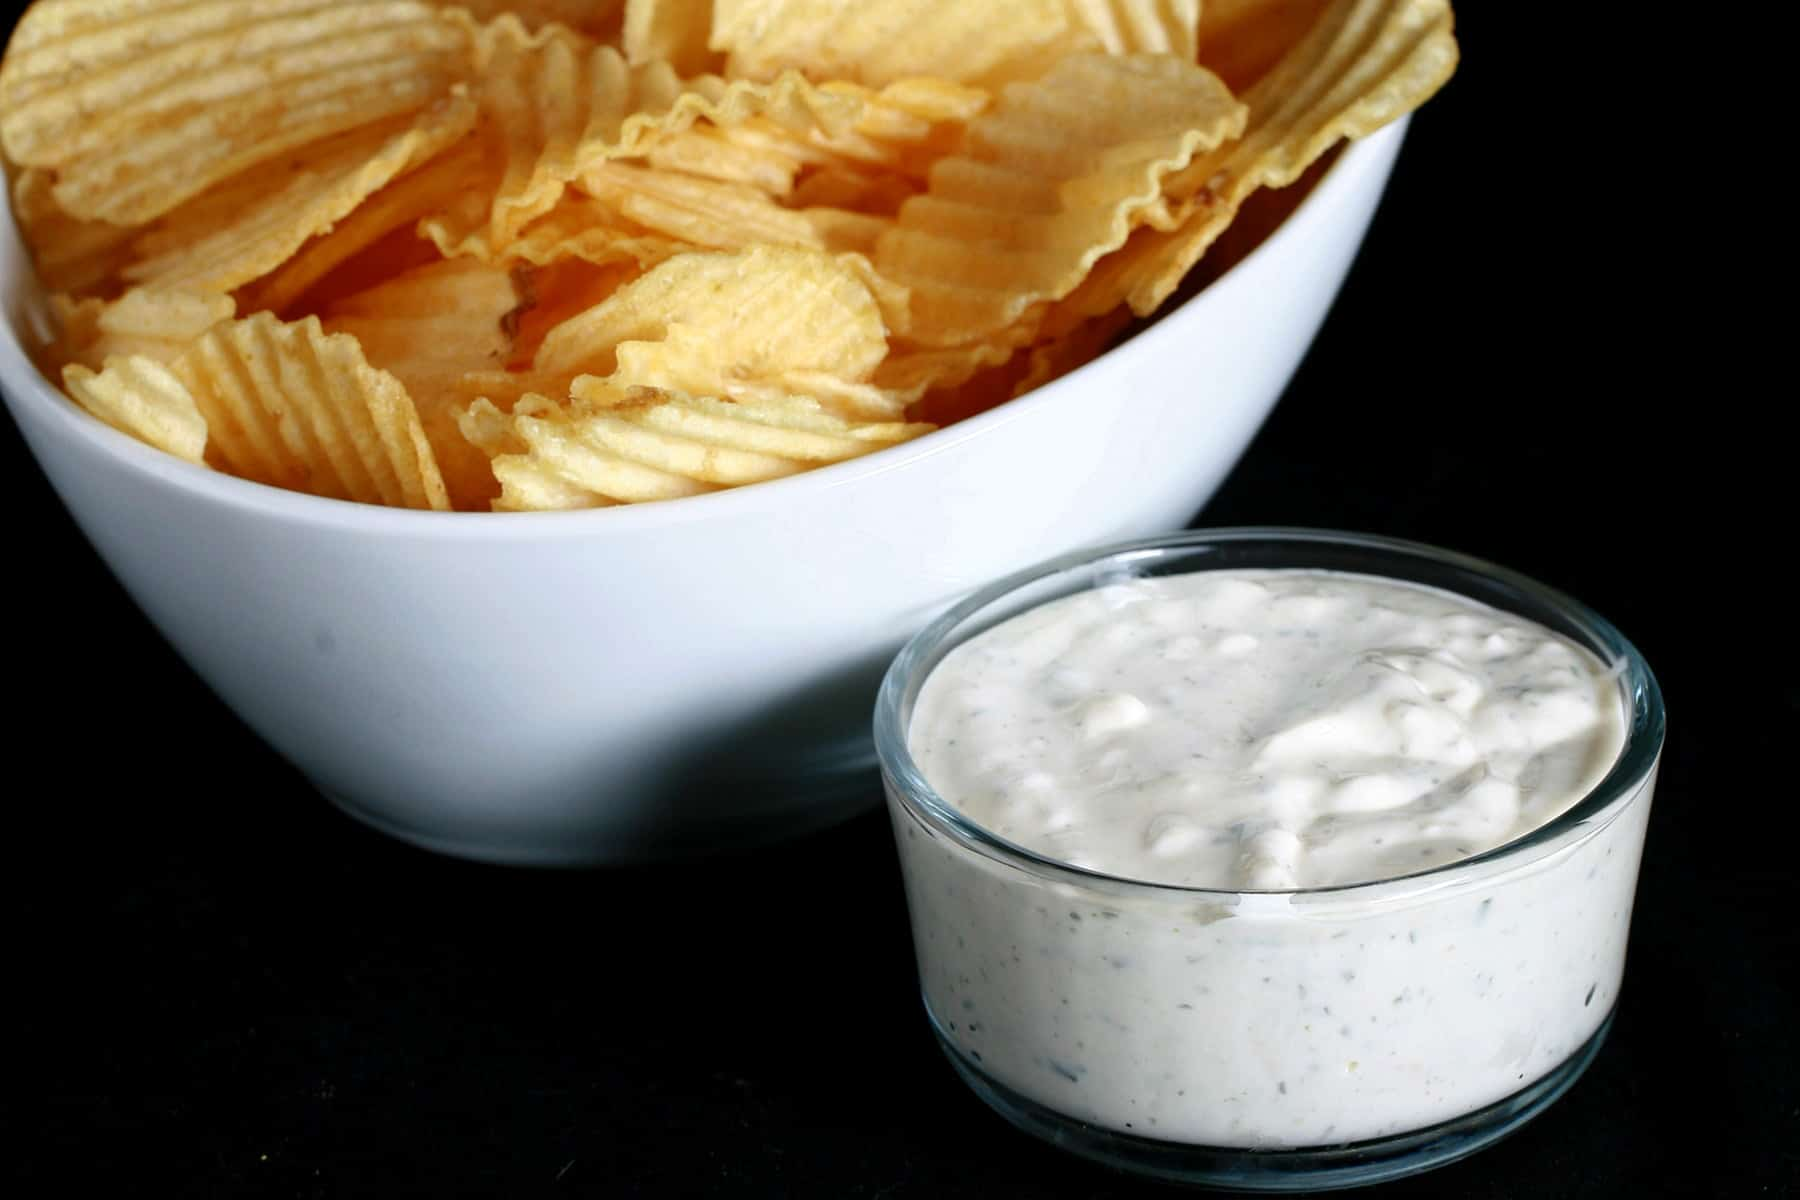 A large bowl of ripple chips is pictured next to a bowl of Dill Pickle Cream Cheese Dip.